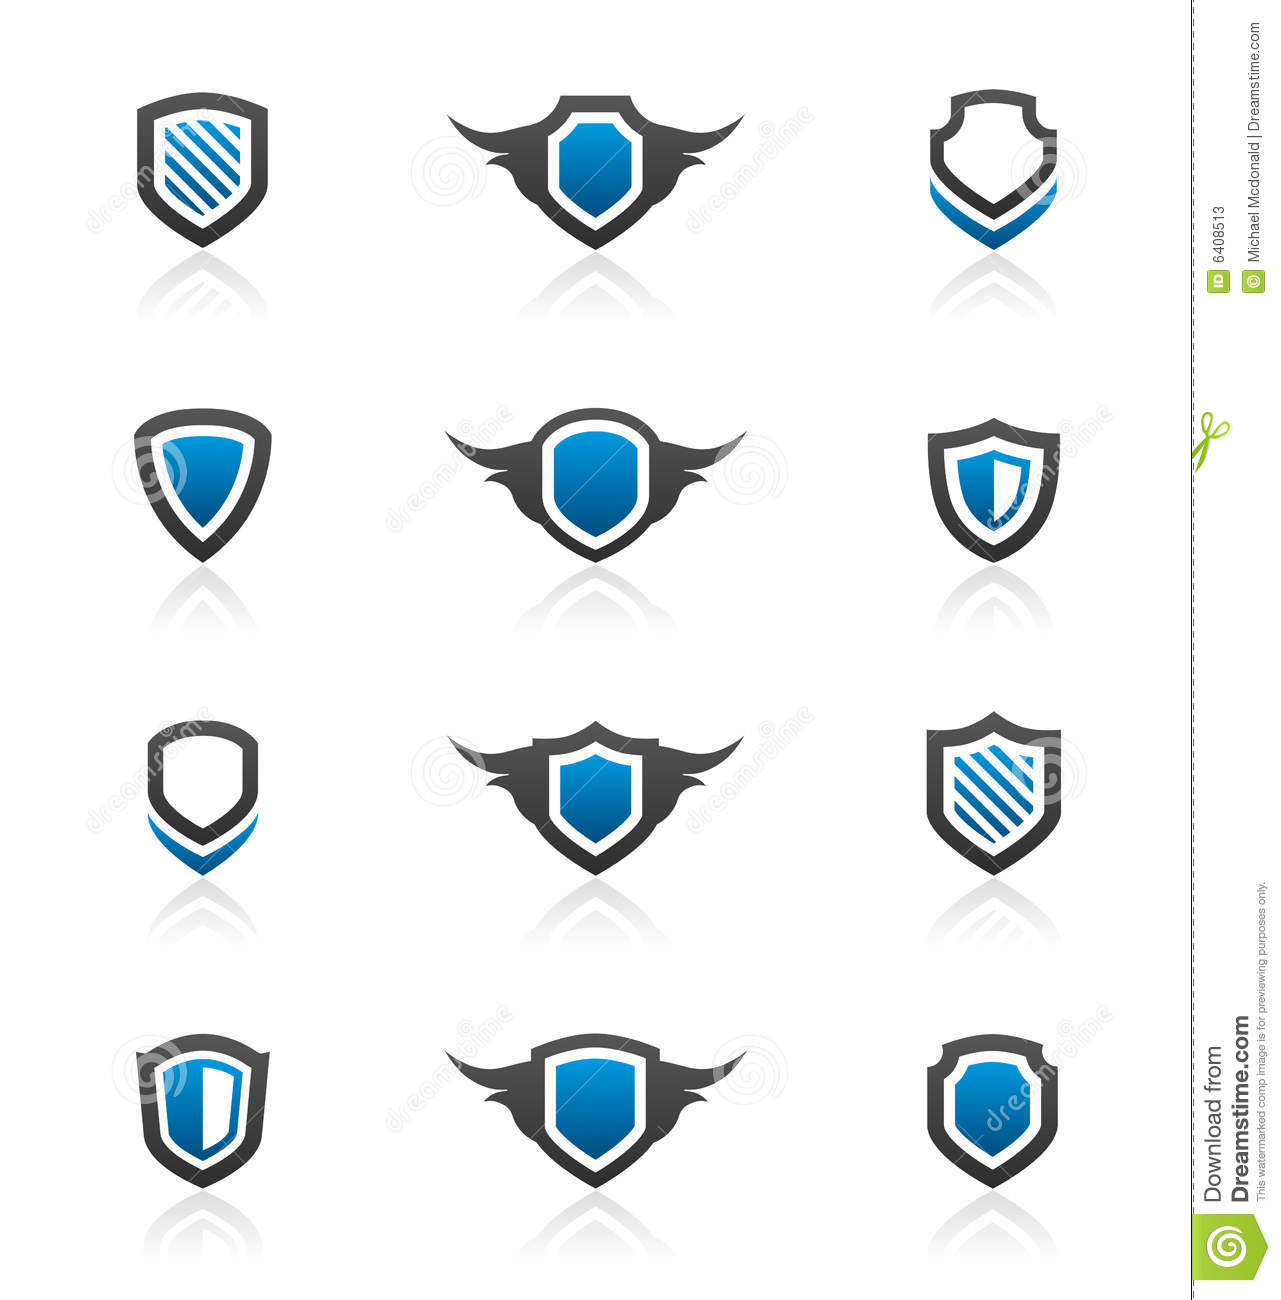 Shield design elements and graphics